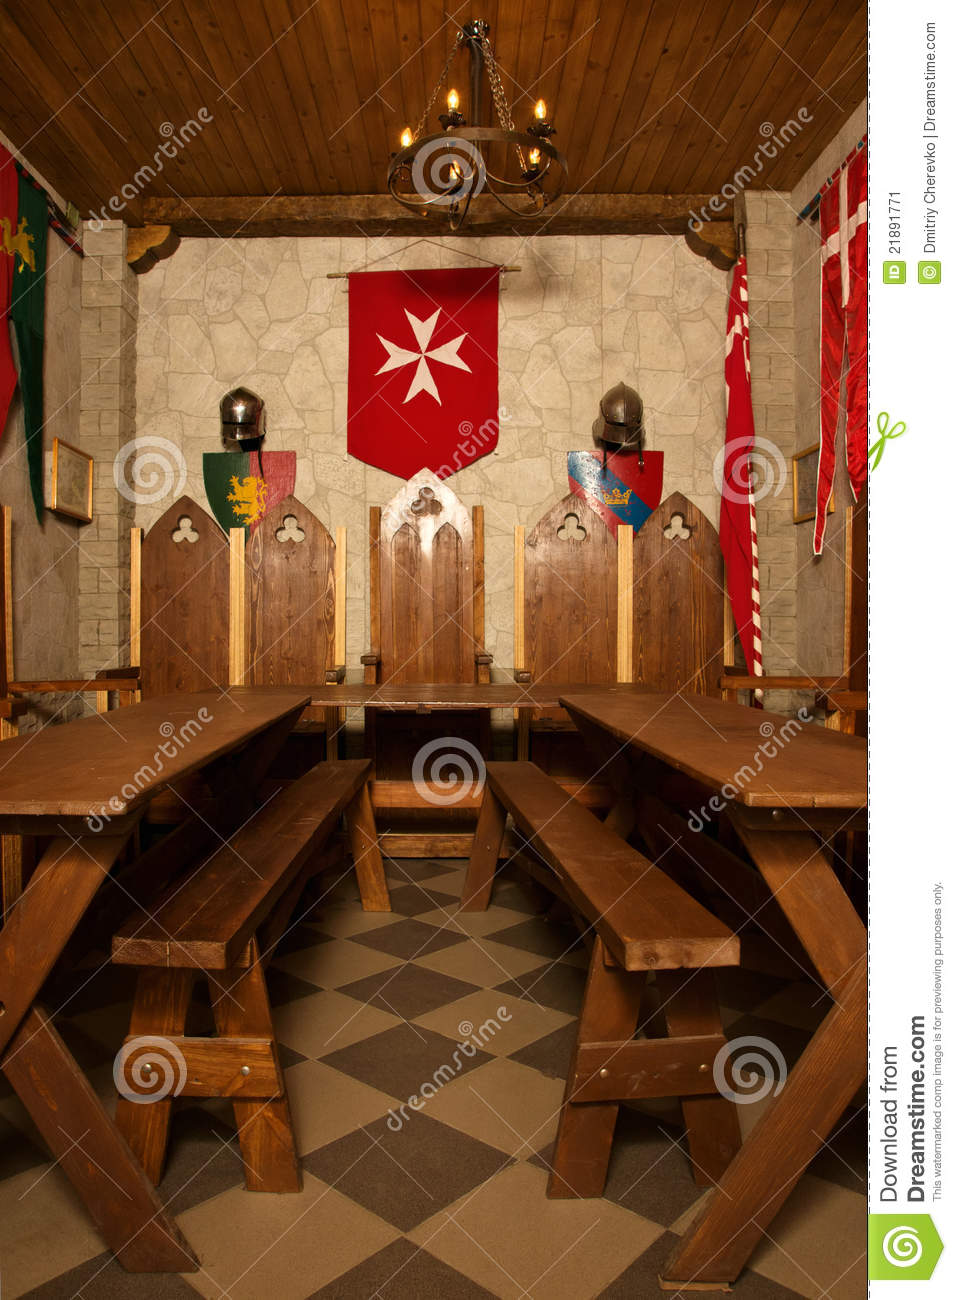 Medieval castle interior stock image Image of architecture  21891771